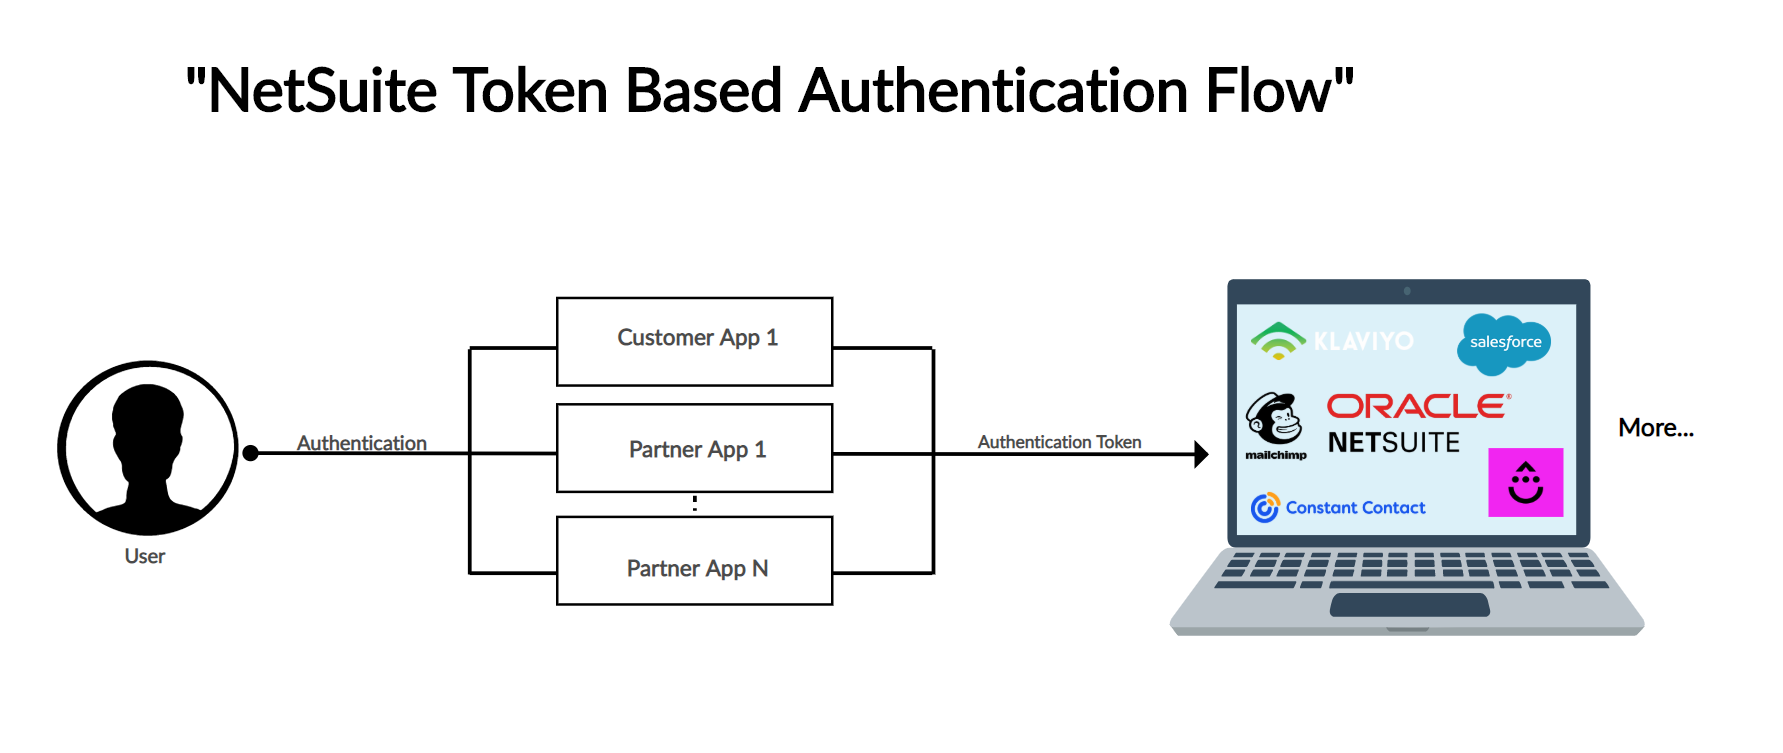 NetSuite-Token-Based-Authentication-Creately.png